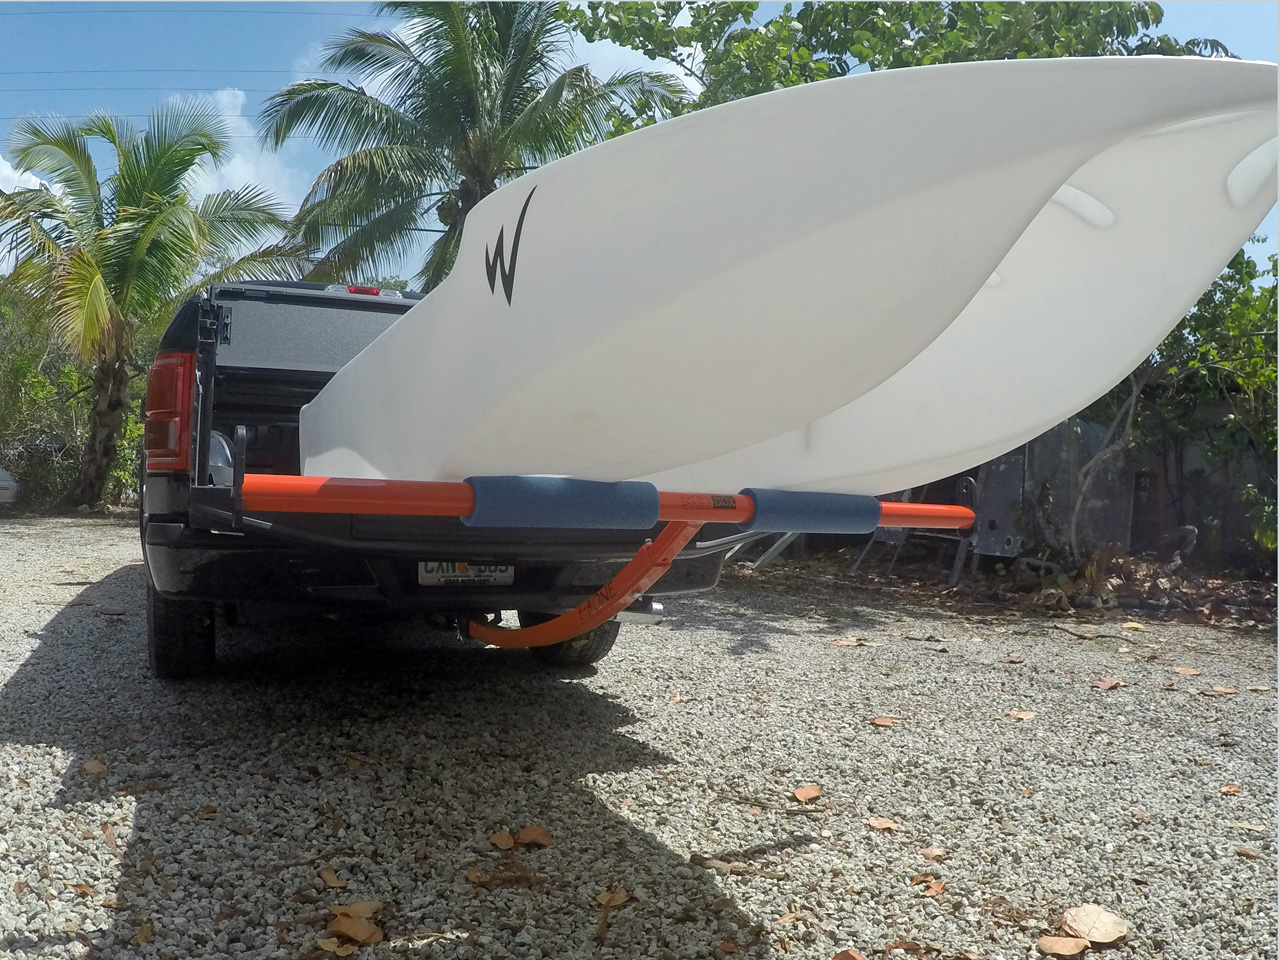 S4 skiff loaded on a pickup truck bed, Florida